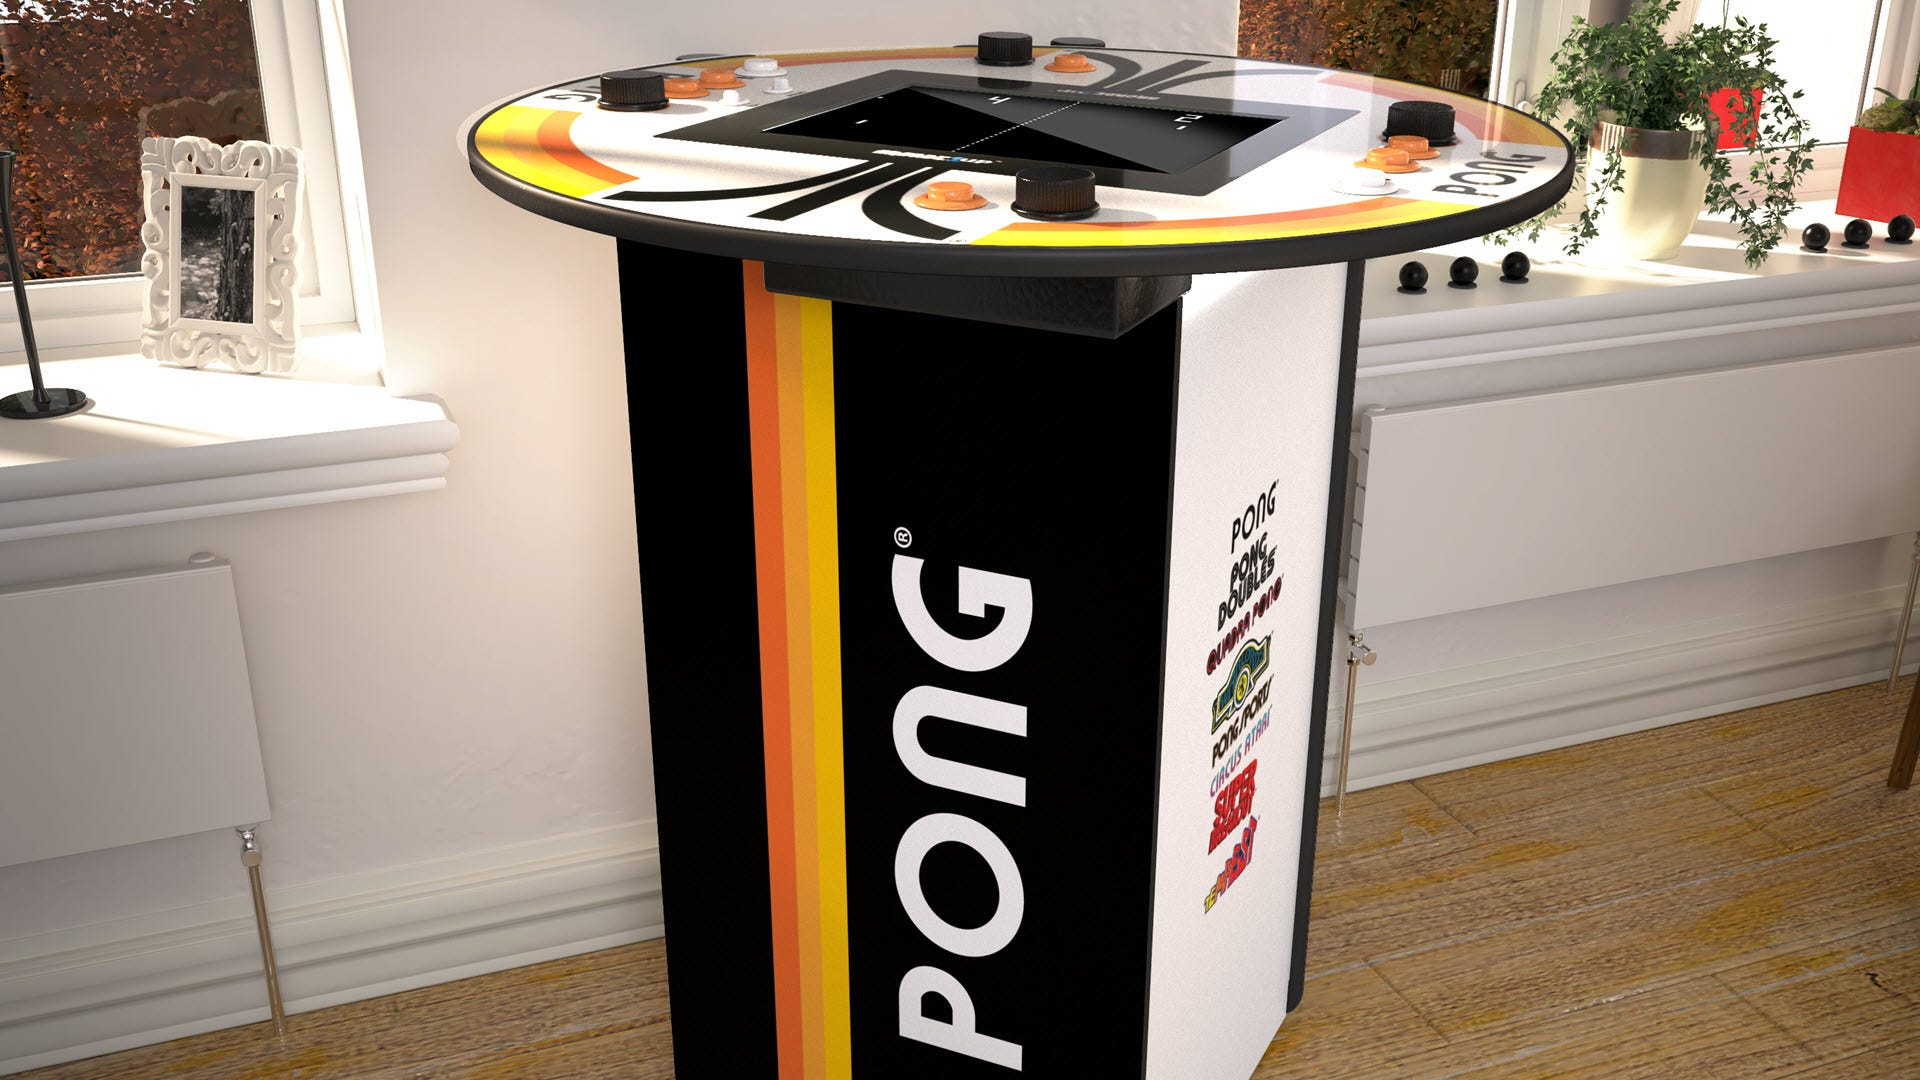 A standing height 'Pong' Table.